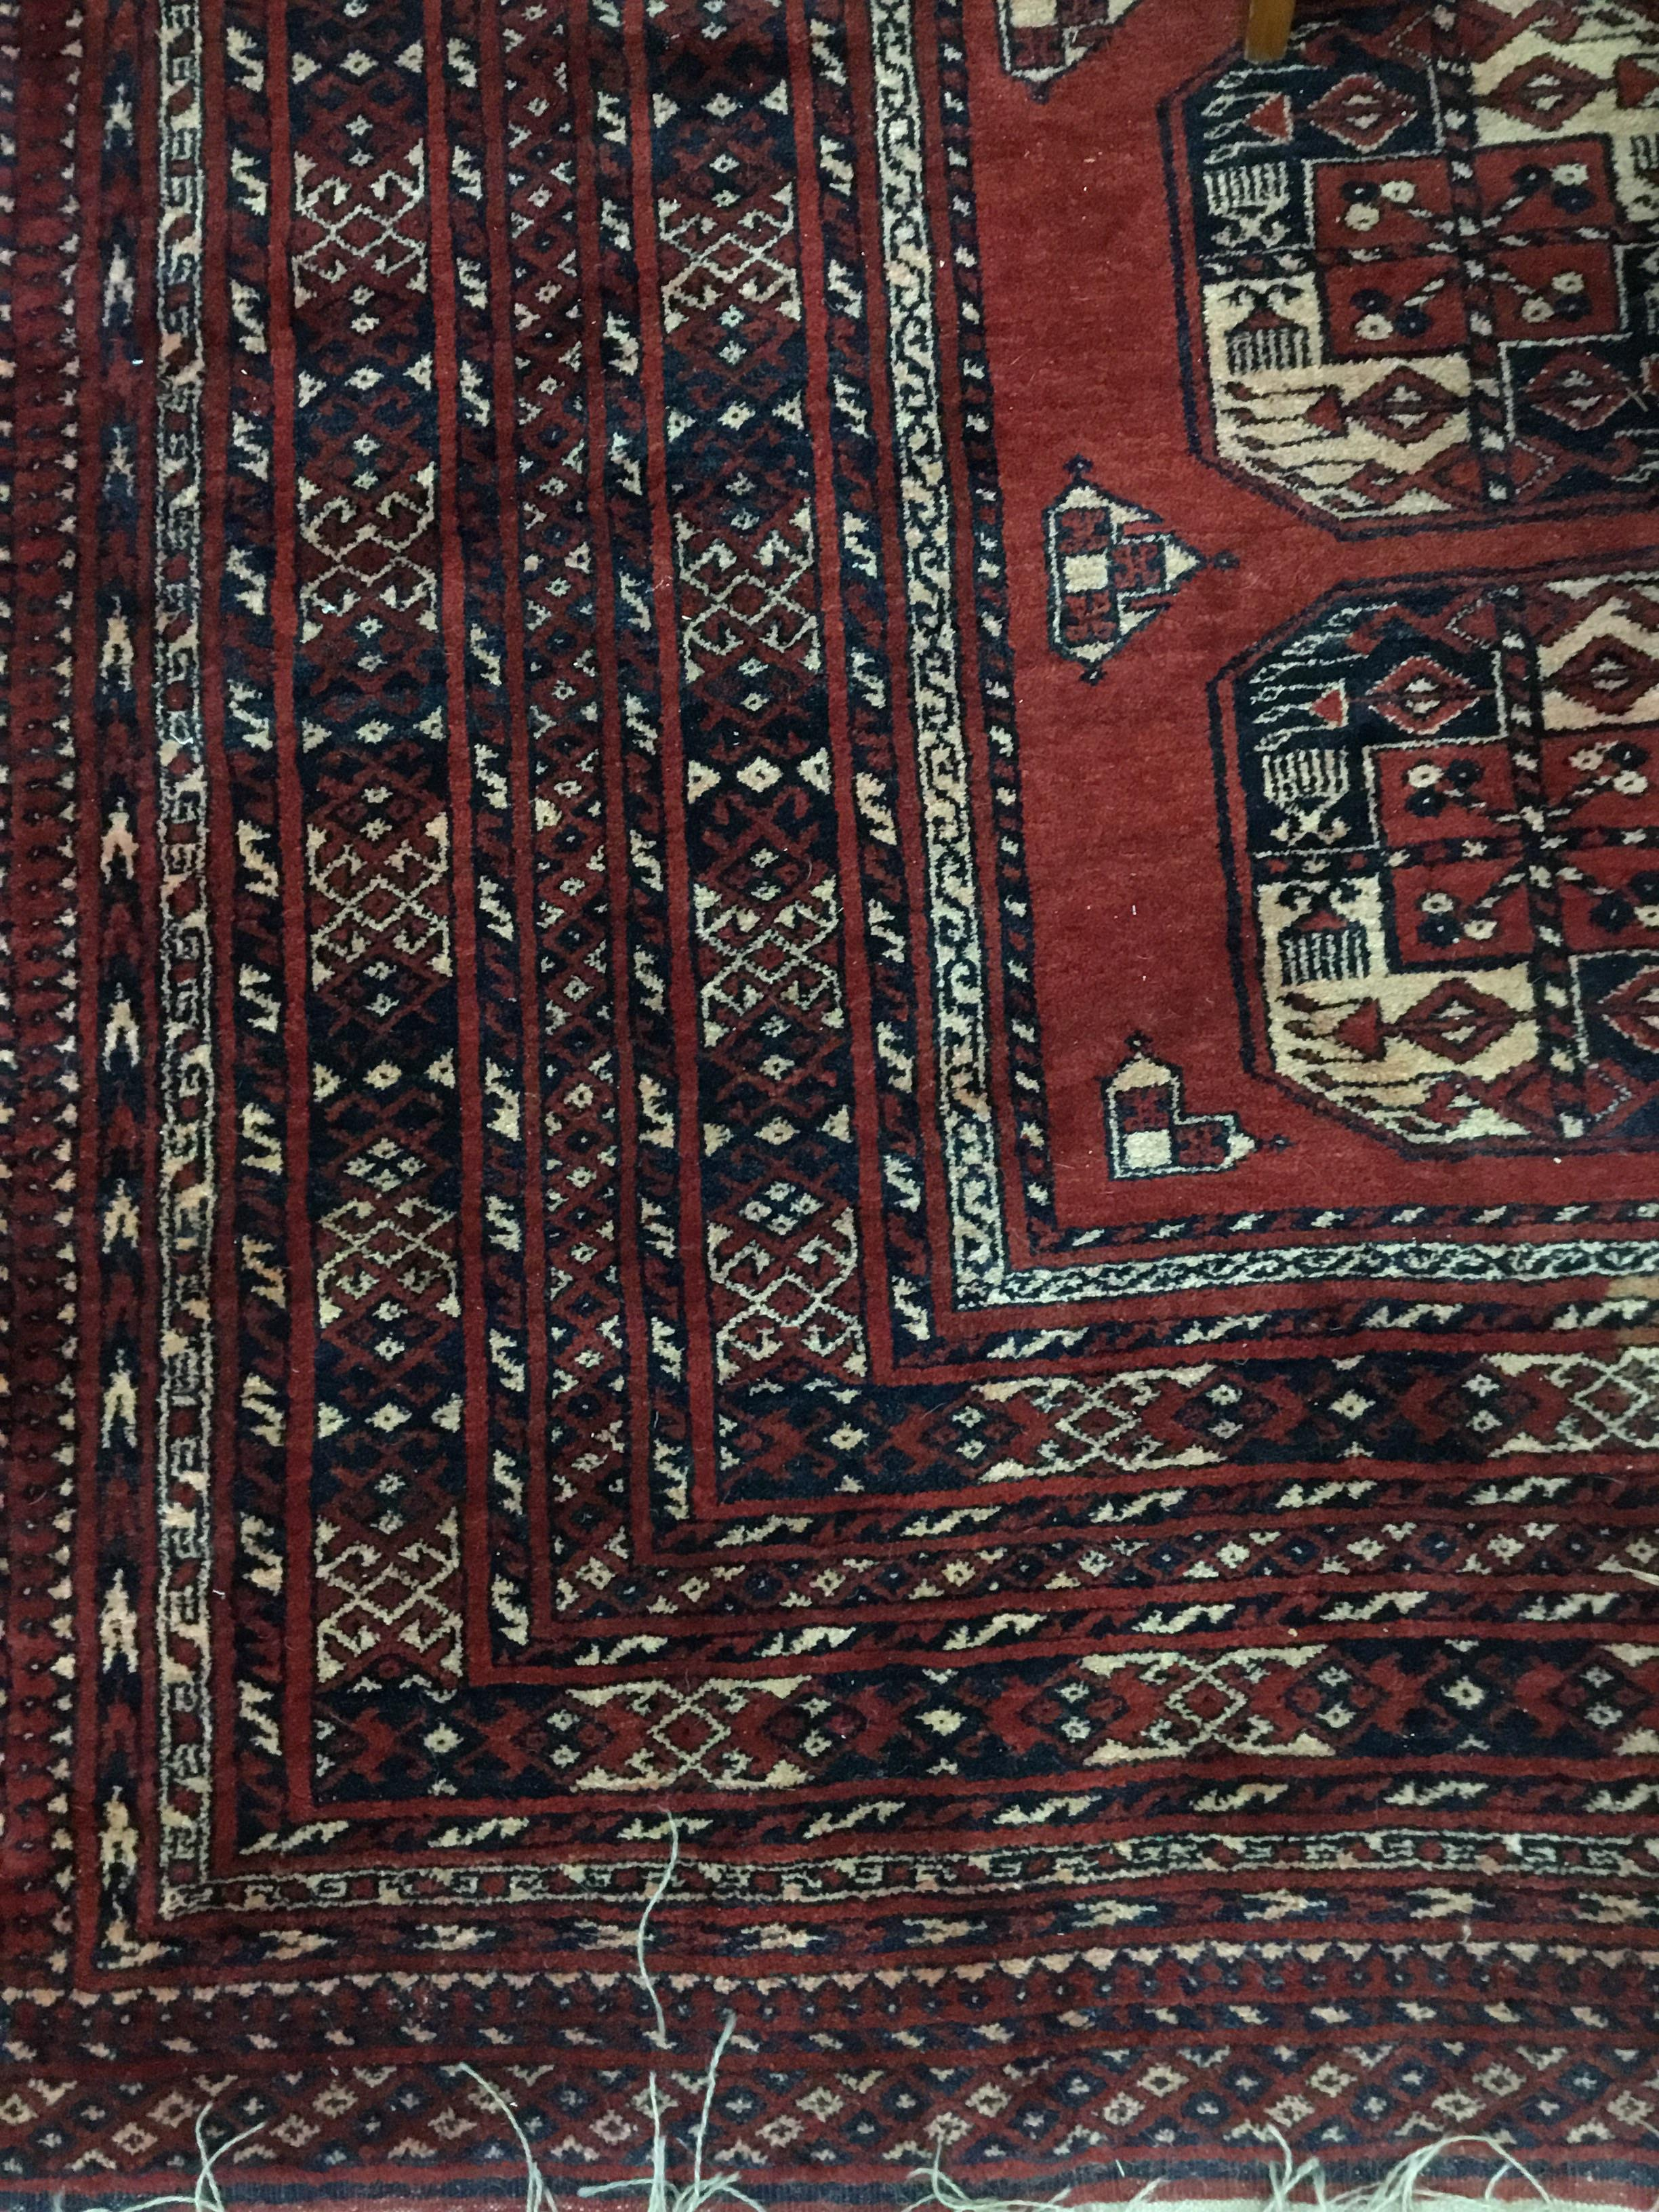 Lot 255 - A 20TH CENTURY EASTERN FRINGED AND MULTI BORDERED CARPET